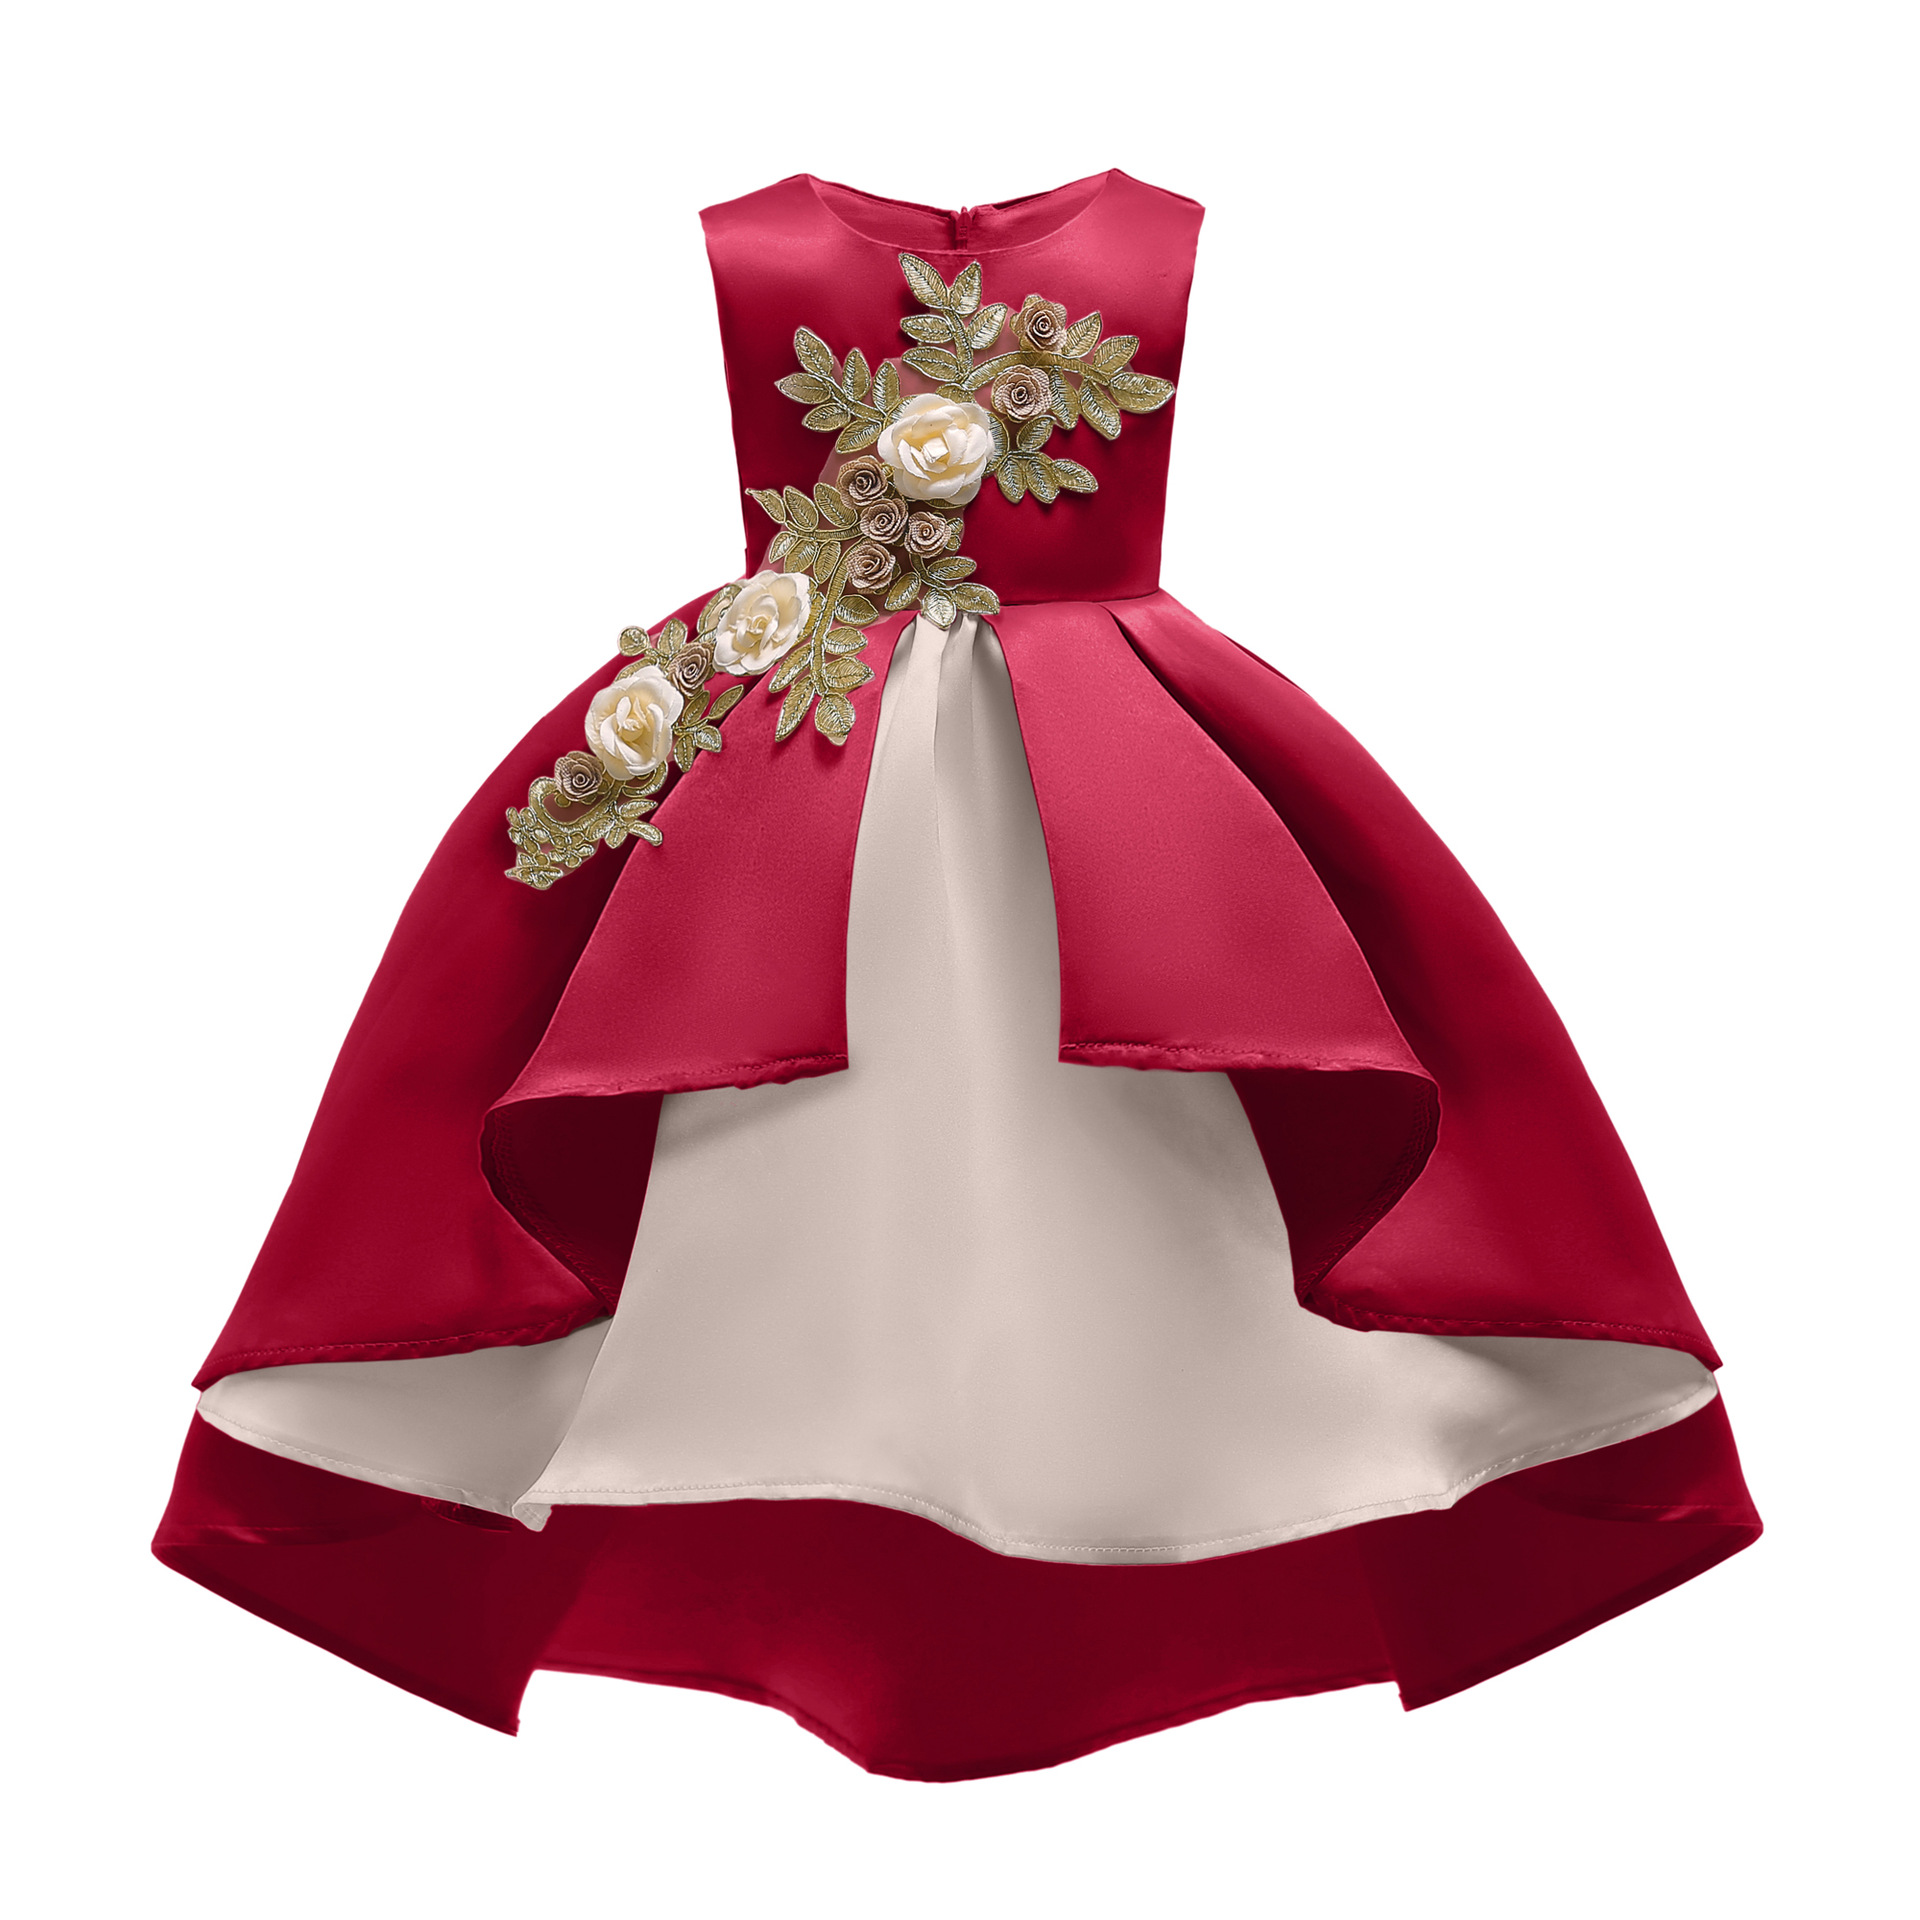 4257bcc45 2019 Baby Girl Wedding Dresses Kids Girl First Birthday Party Formal ...